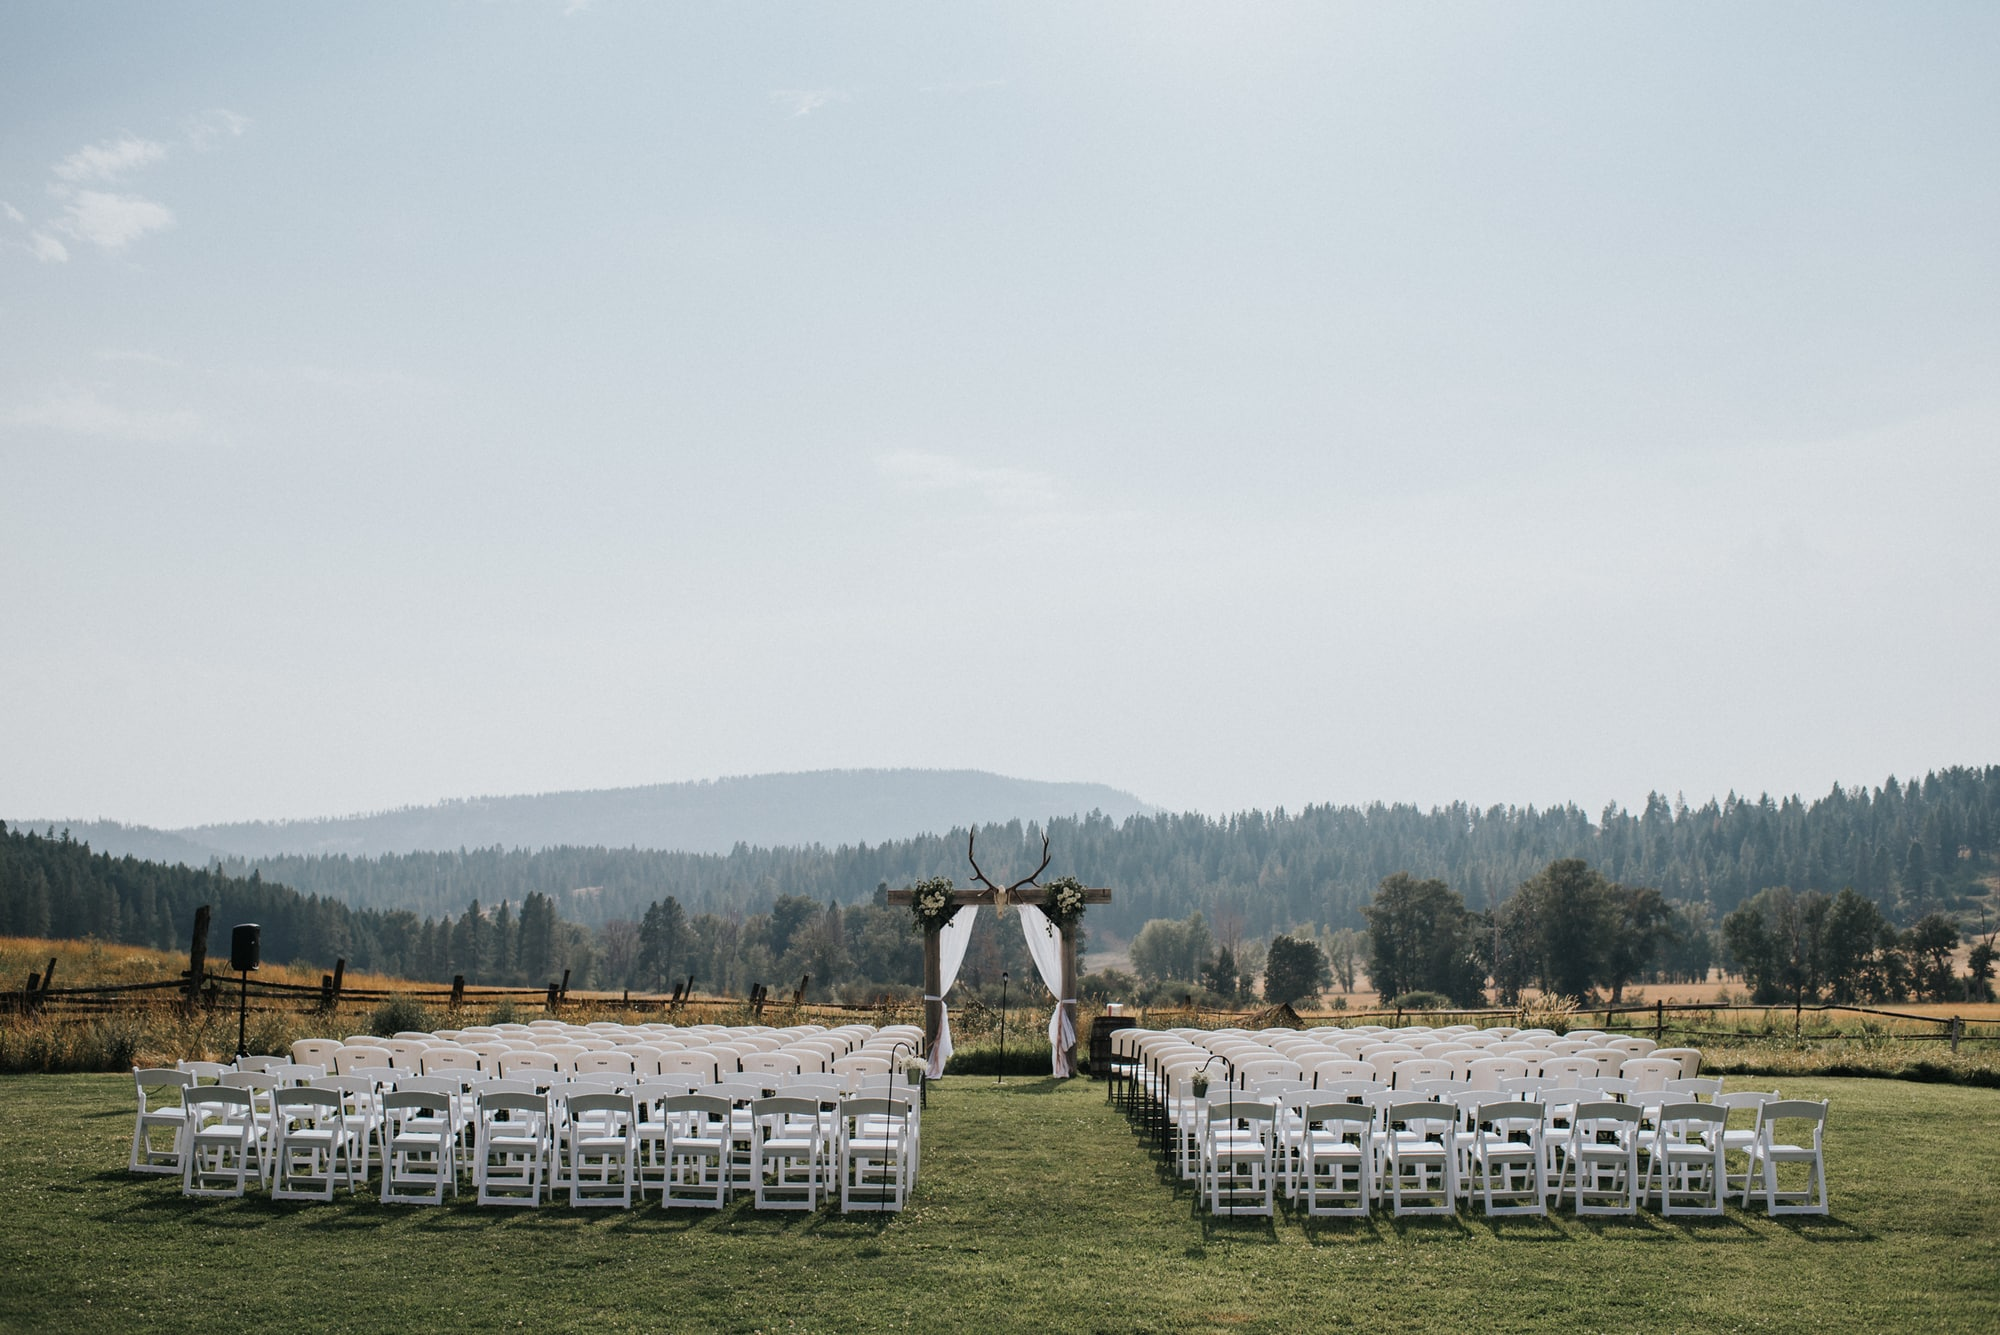 outdoor wedding ceremony setup at the cattle barn